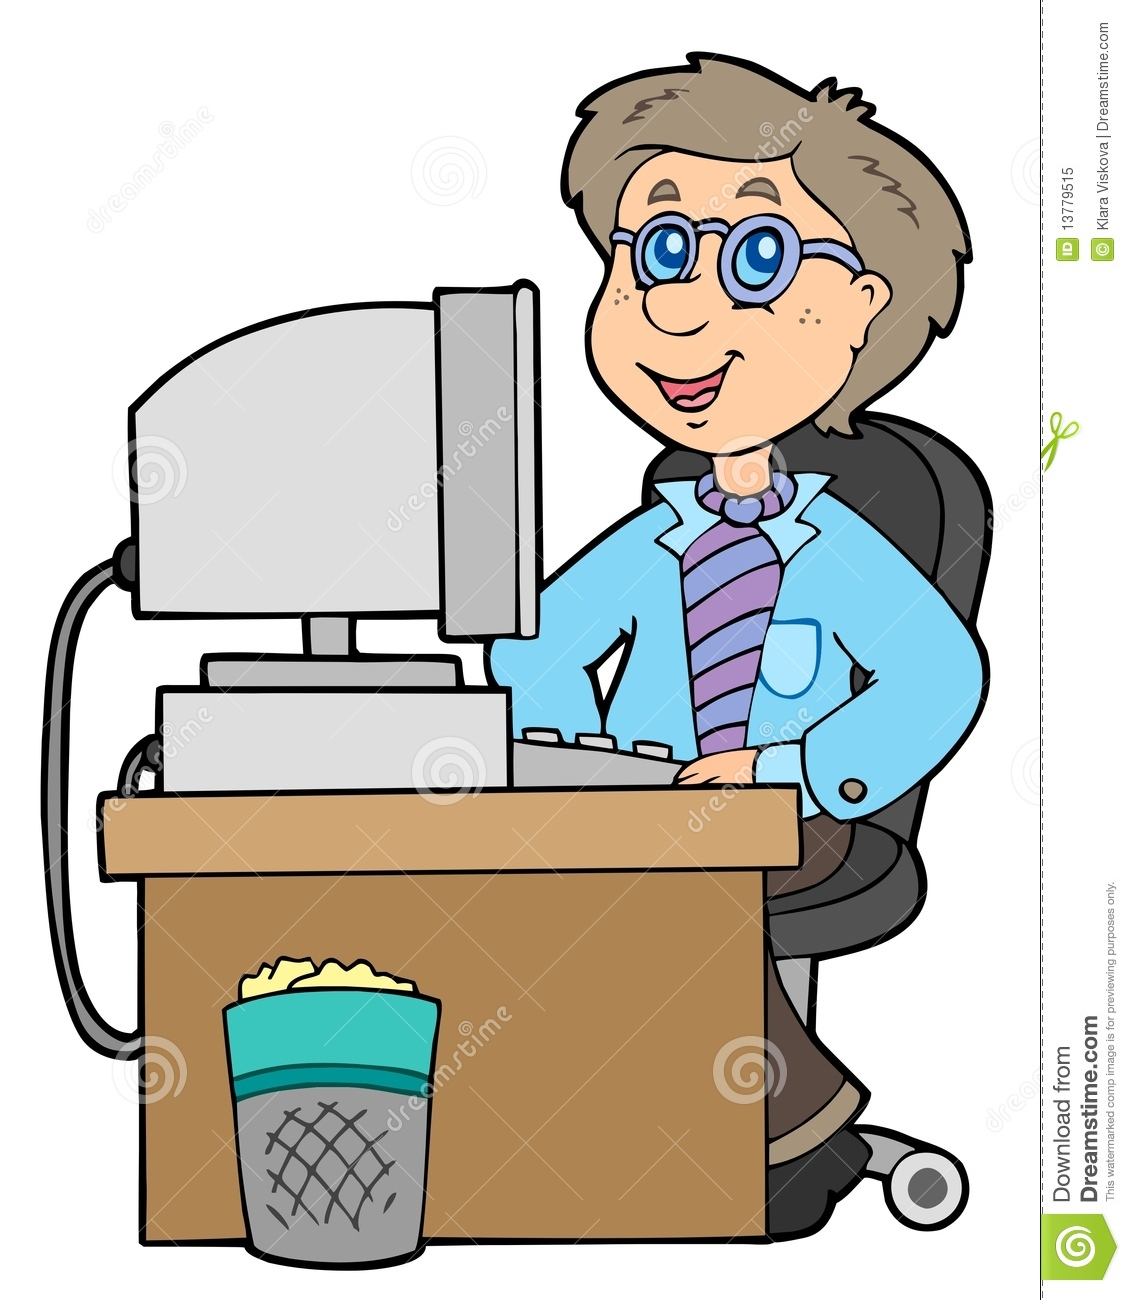 cartoon office worker stock vector illustration of happiness 13779515 rh dreamstime com free busy office worker clipart